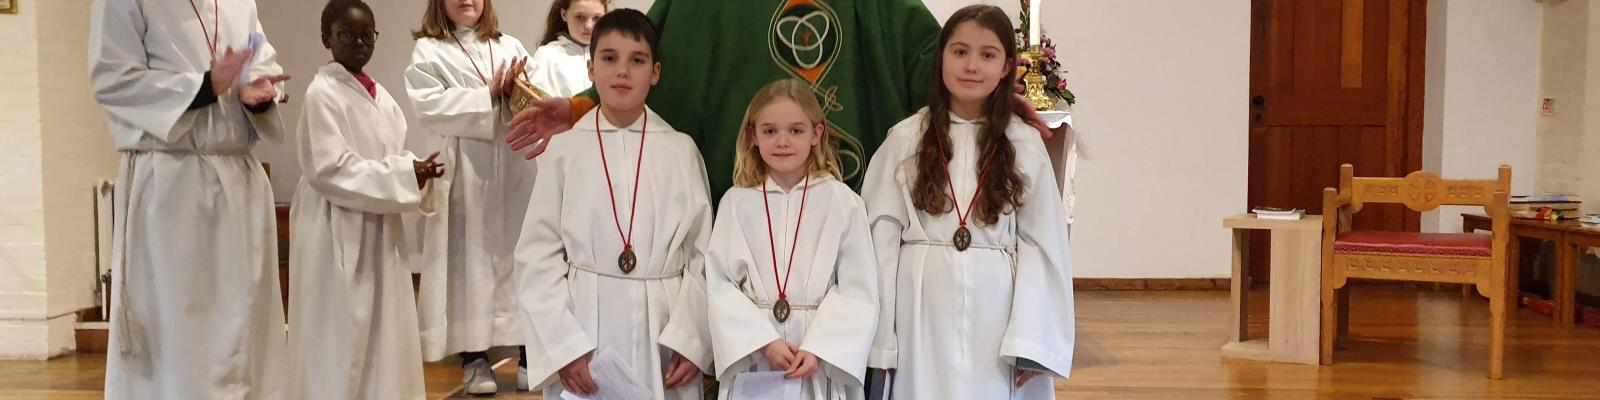 Altar Servers receiving their guild of St Stephen medals.